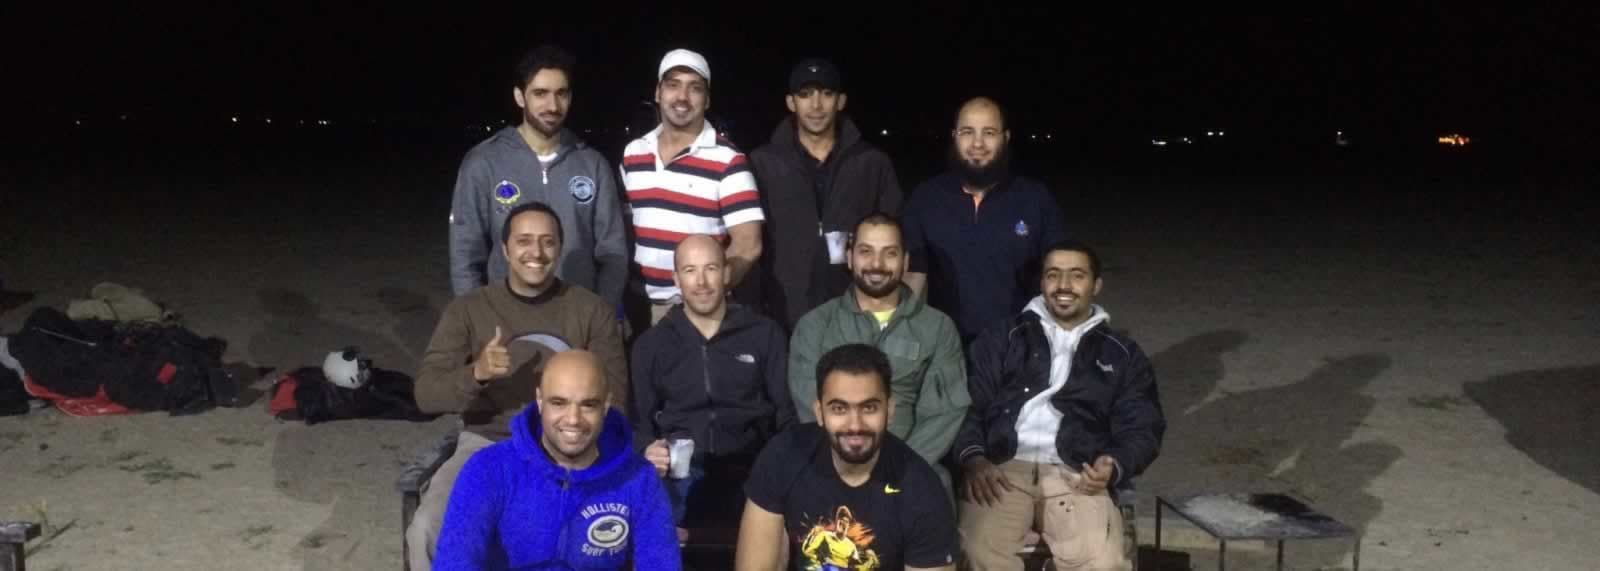 APPI PPG Instructor course in Kuwait - APPI PPG